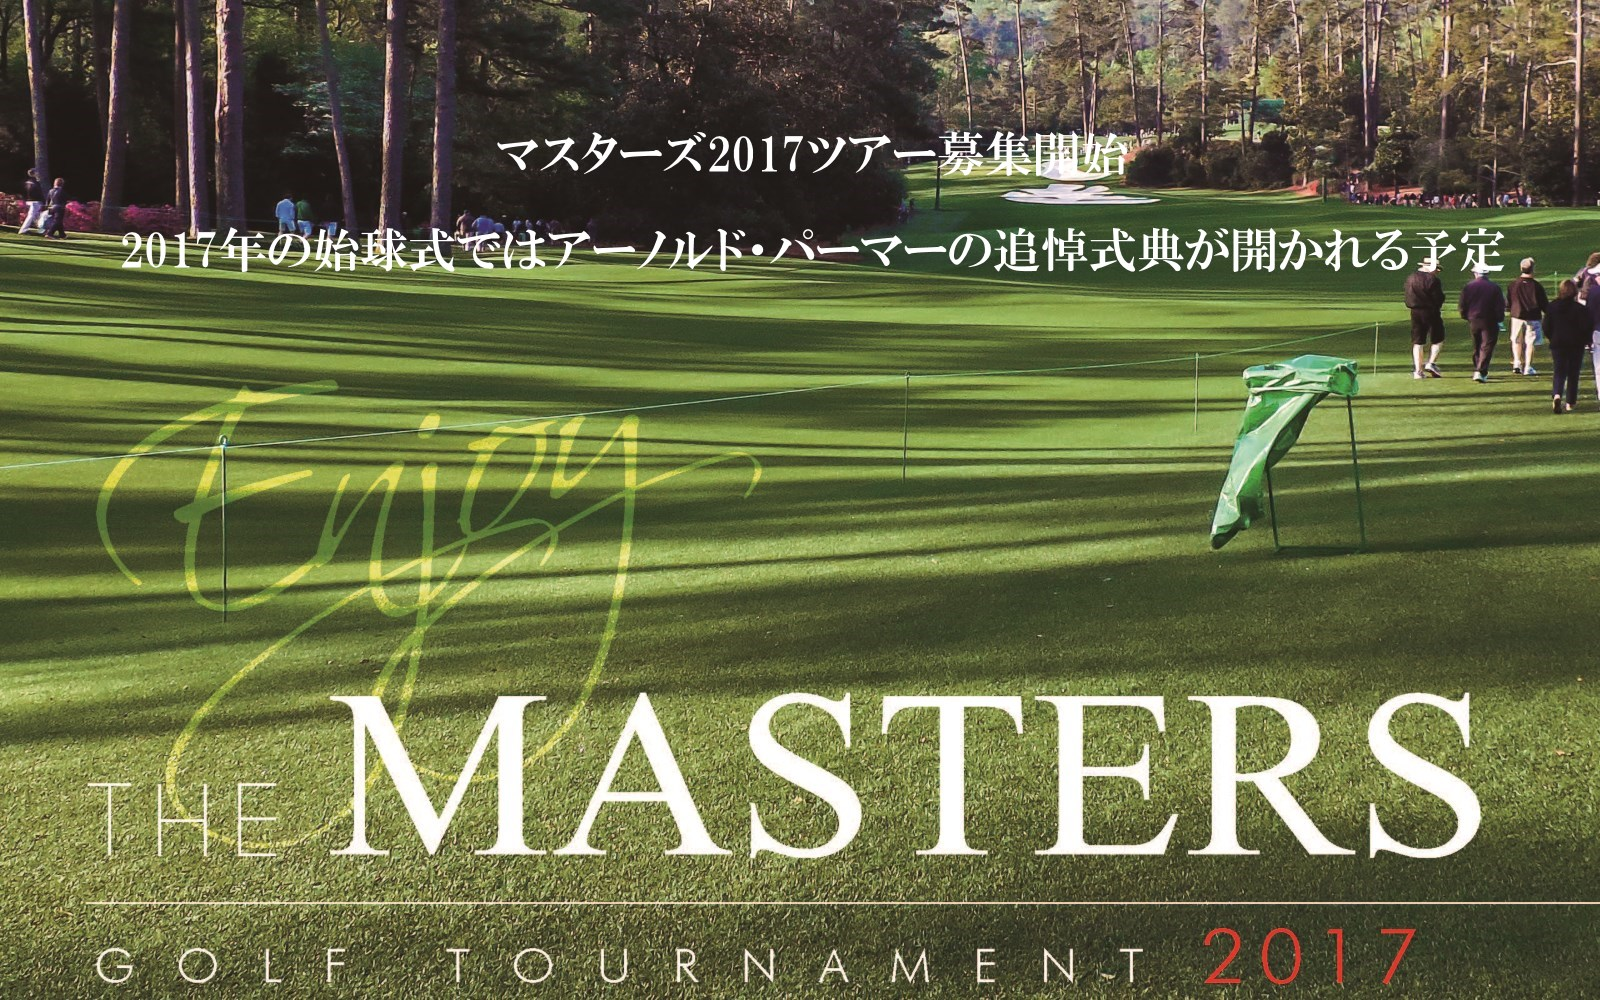 masters_2017